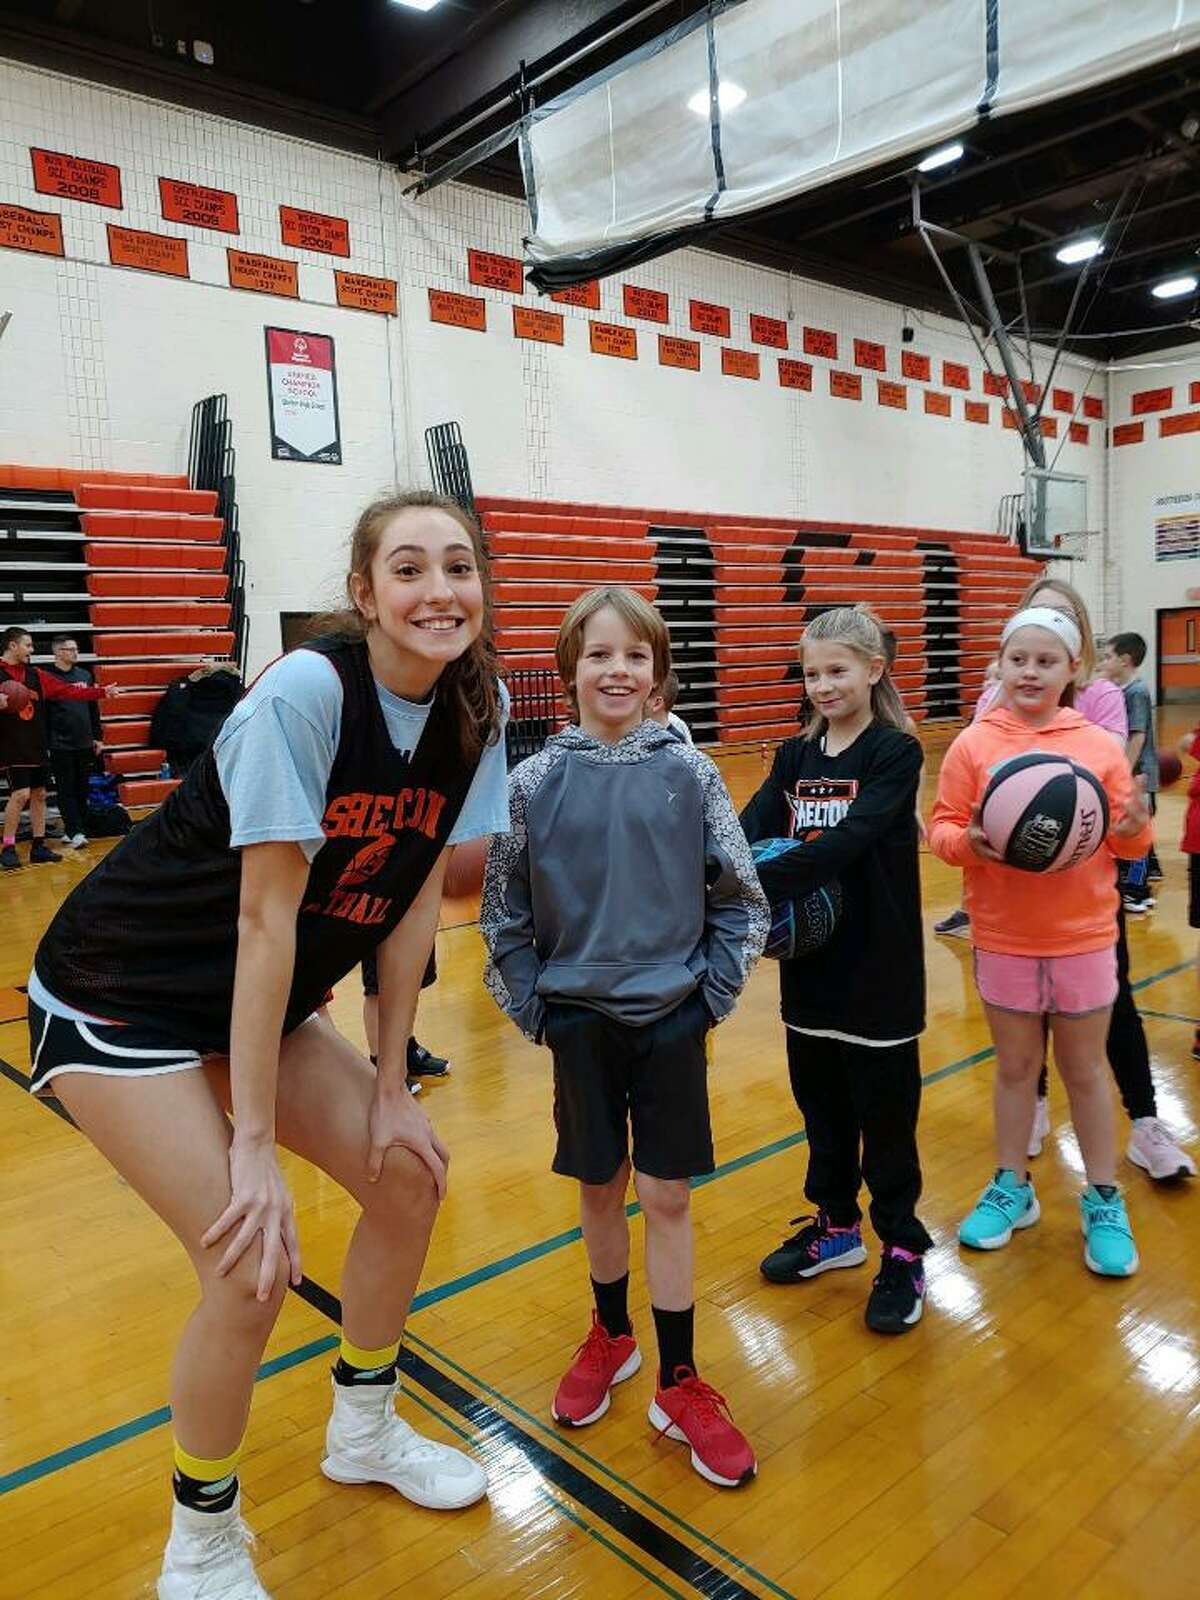 Shelton High varsity basketball players and coaches held a shooting clinic on Monday, Jan. 20. They taught younger kids basketball skills and collected food for the Audrey Dreyer Food Bank in the process.